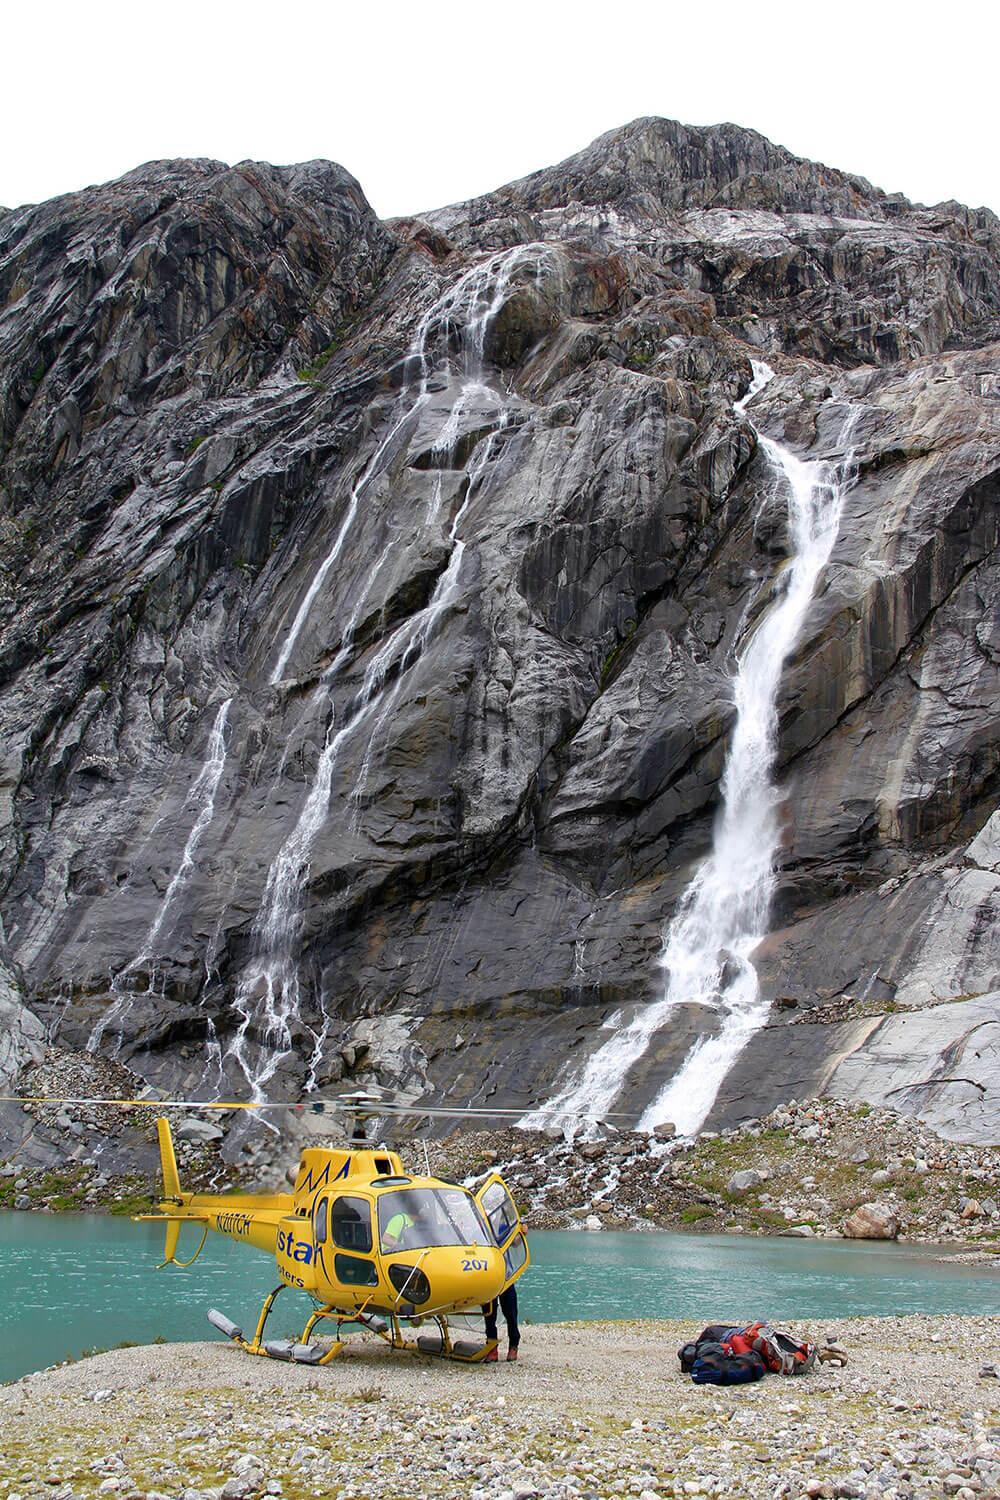 Helicopter base camp waterfall